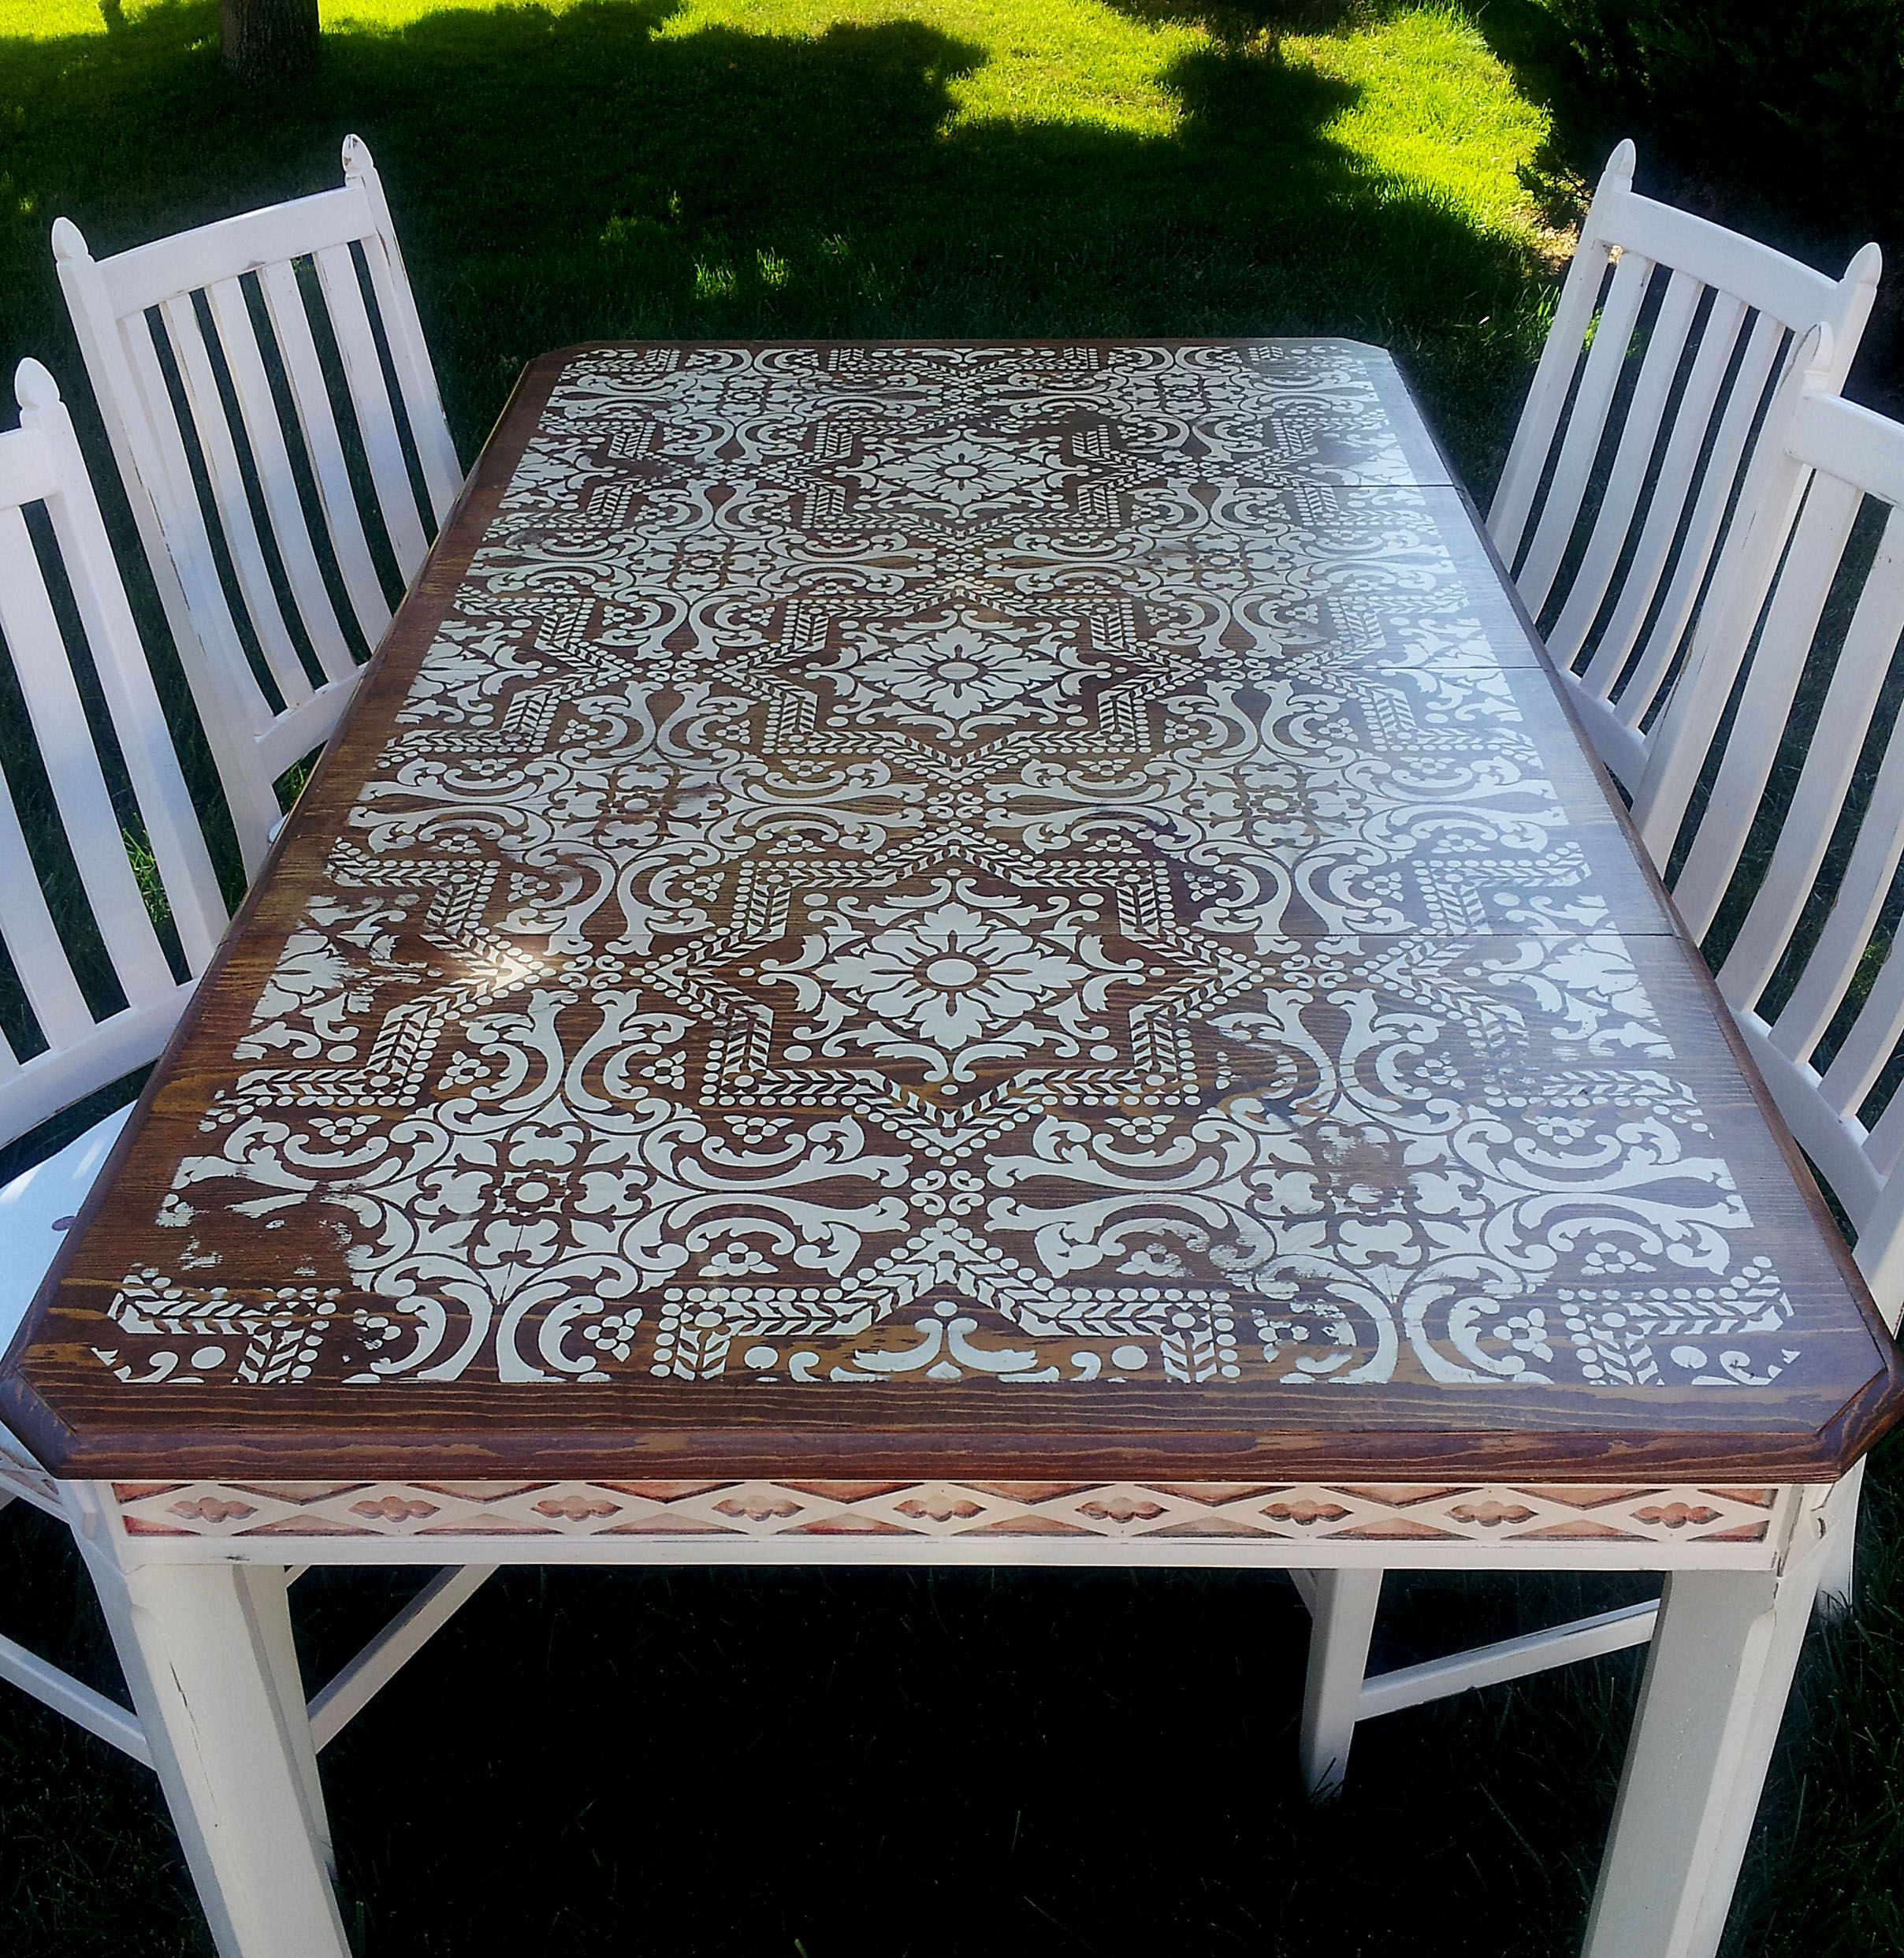 Best 25 Stenciled dining table ideas on Pinterest DIY  : 4c116260290d8f30f4952fdb7854886e from www.pinterest.com size 2416 x 2484 jpeg 1235kB